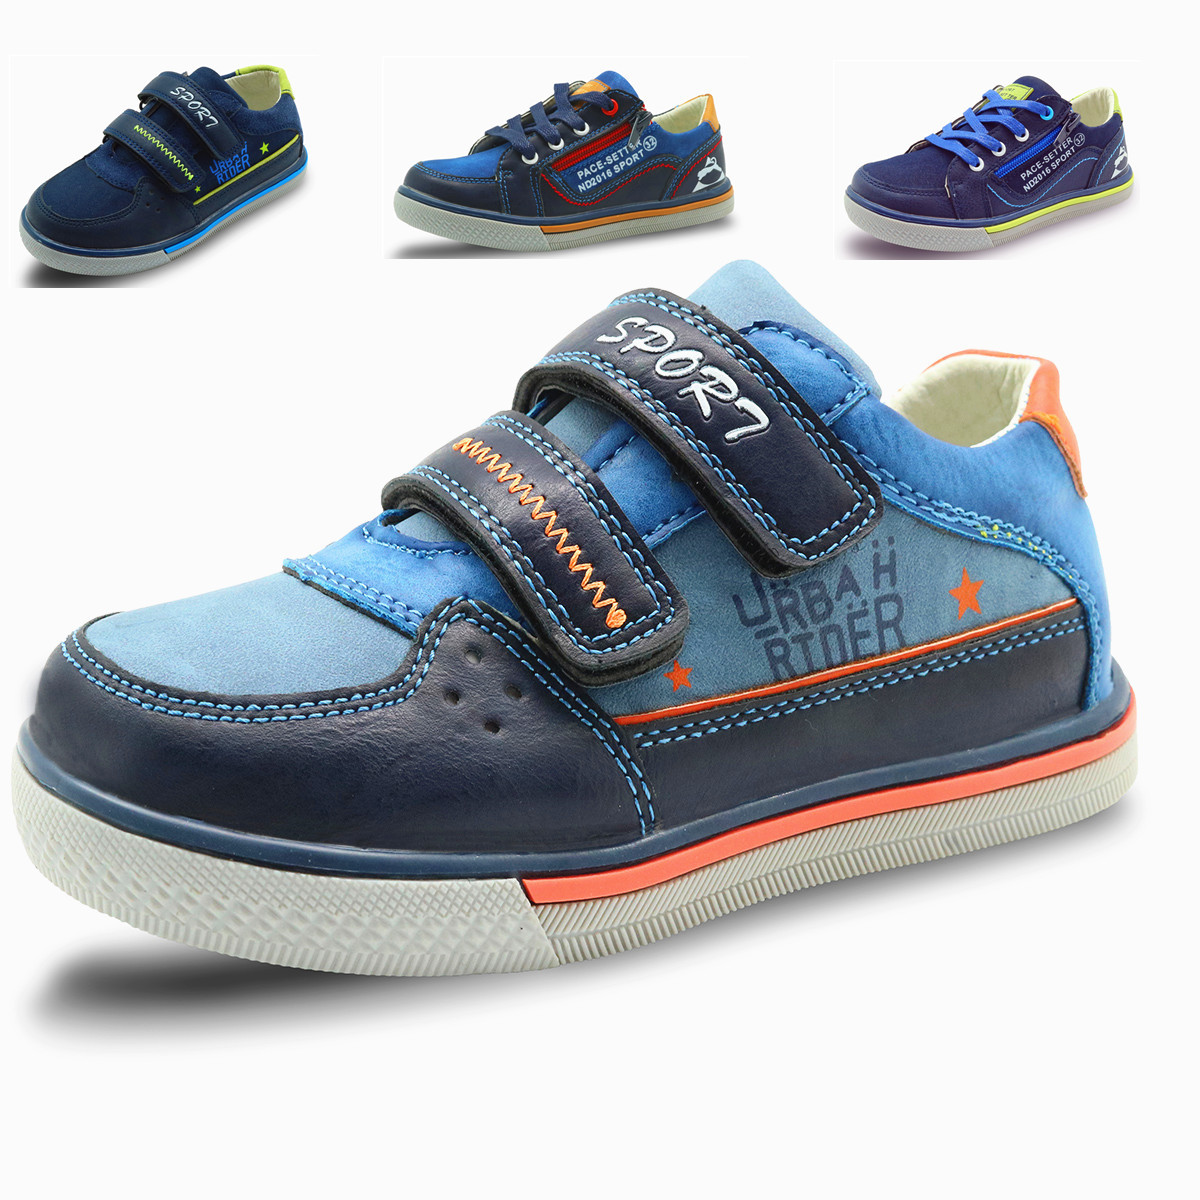 buy wholesale sports shoes australia from china